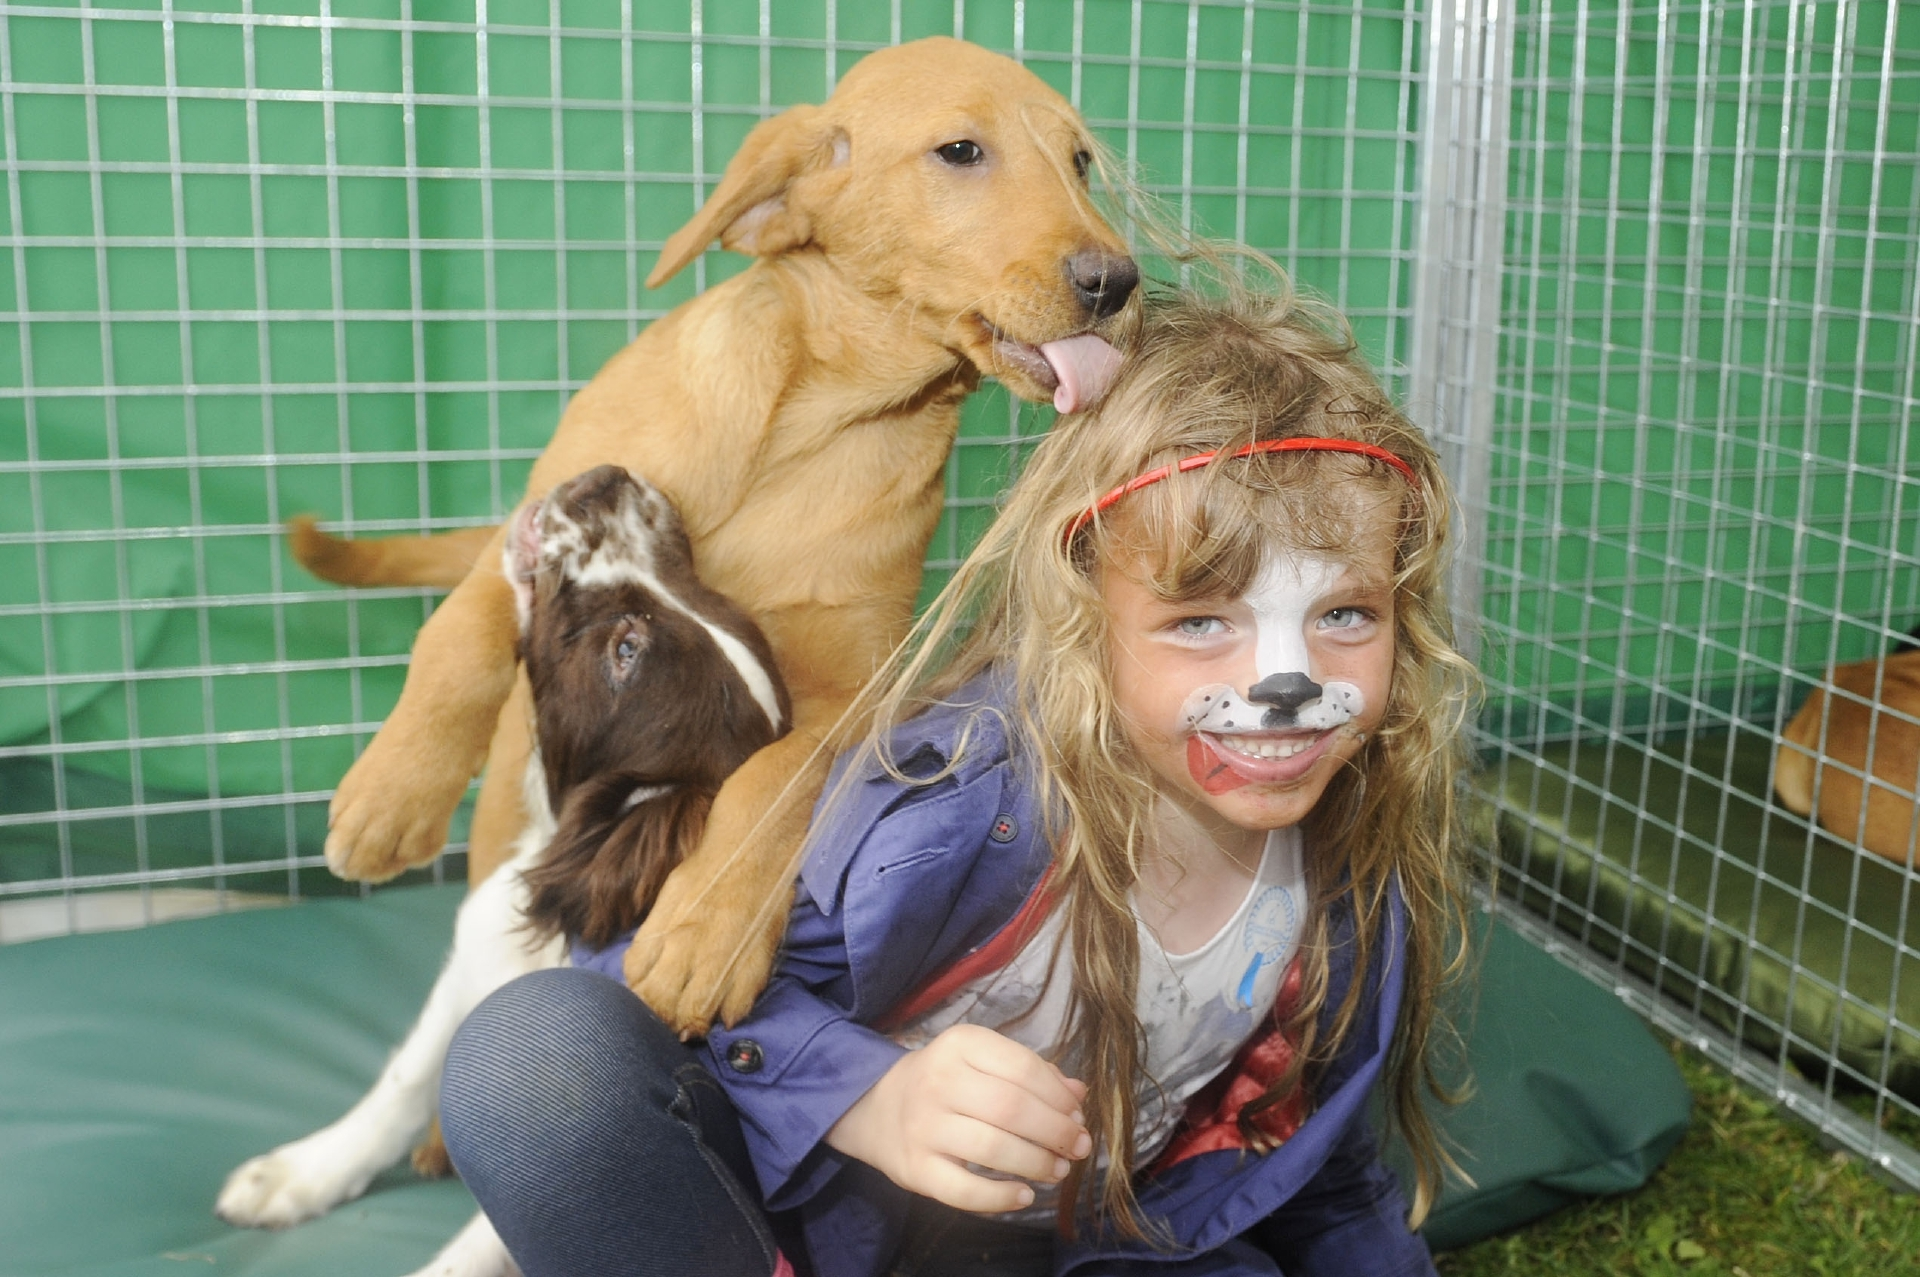 Amelia Marshall (5) from Edinburgh with some trainee gundogs.